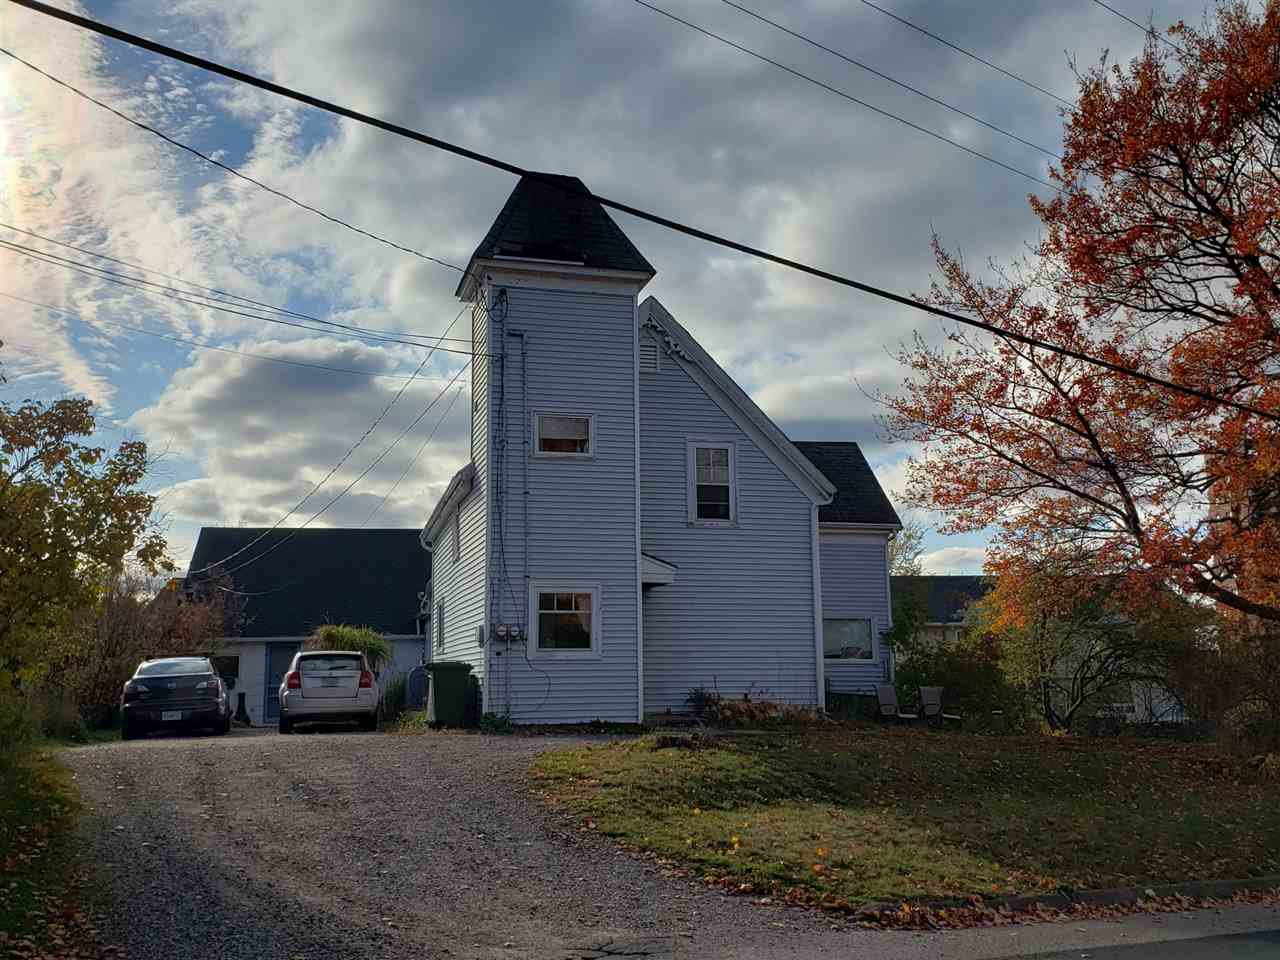 Main Photo: 72 Highland Avenue in Wolfville: 404-Kings County Multi-Family for sale (Annapolis Valley)  : MLS®# 202100237